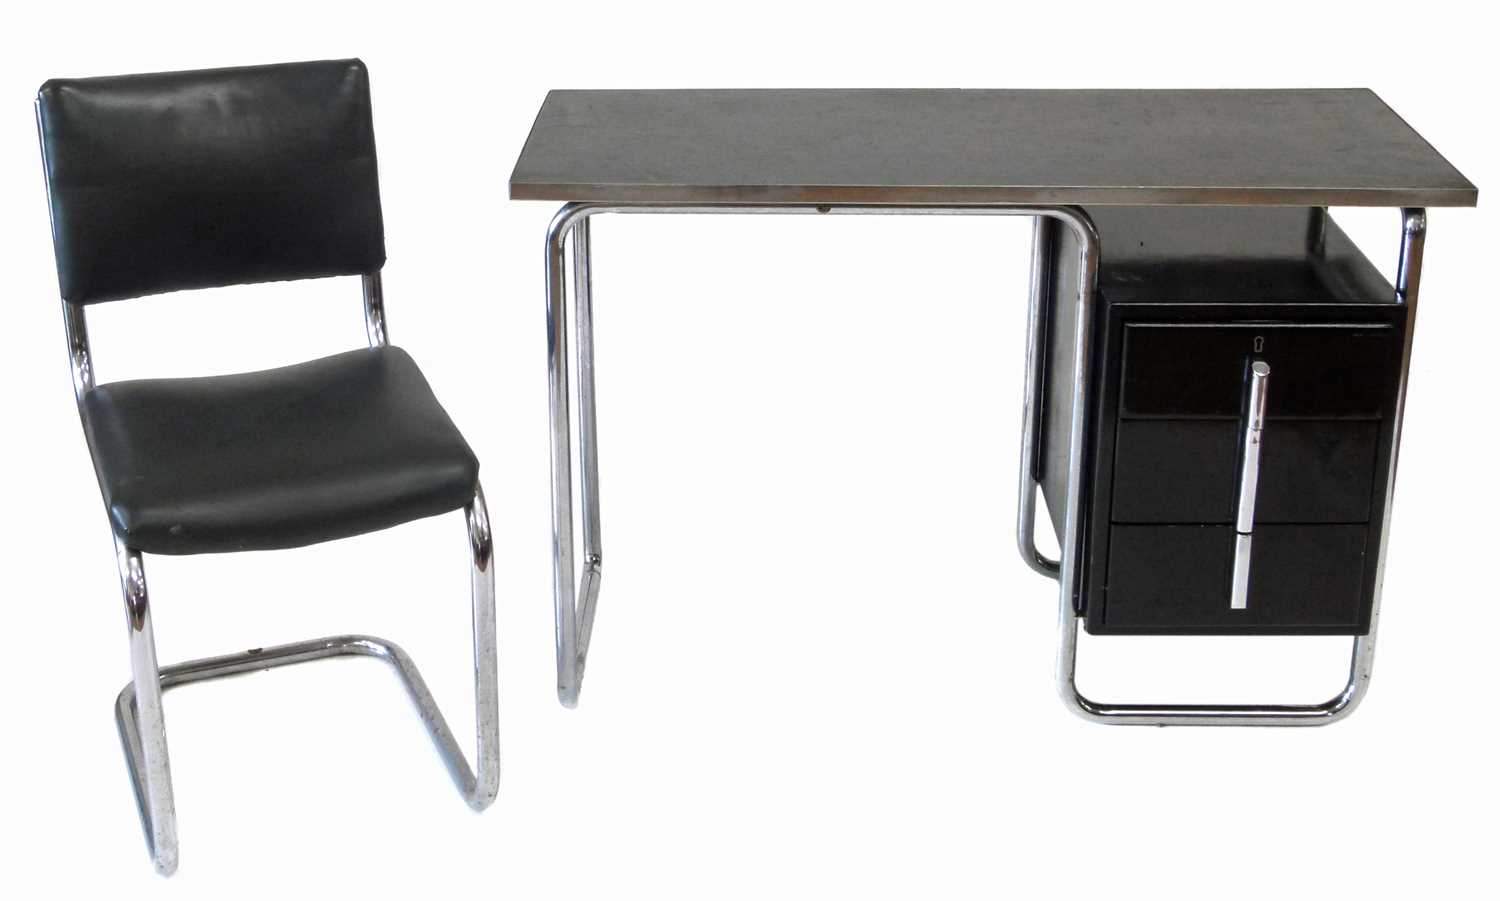 206 - PEL desk by Wells Coates, chrome and black lacquered writing desk and chair.